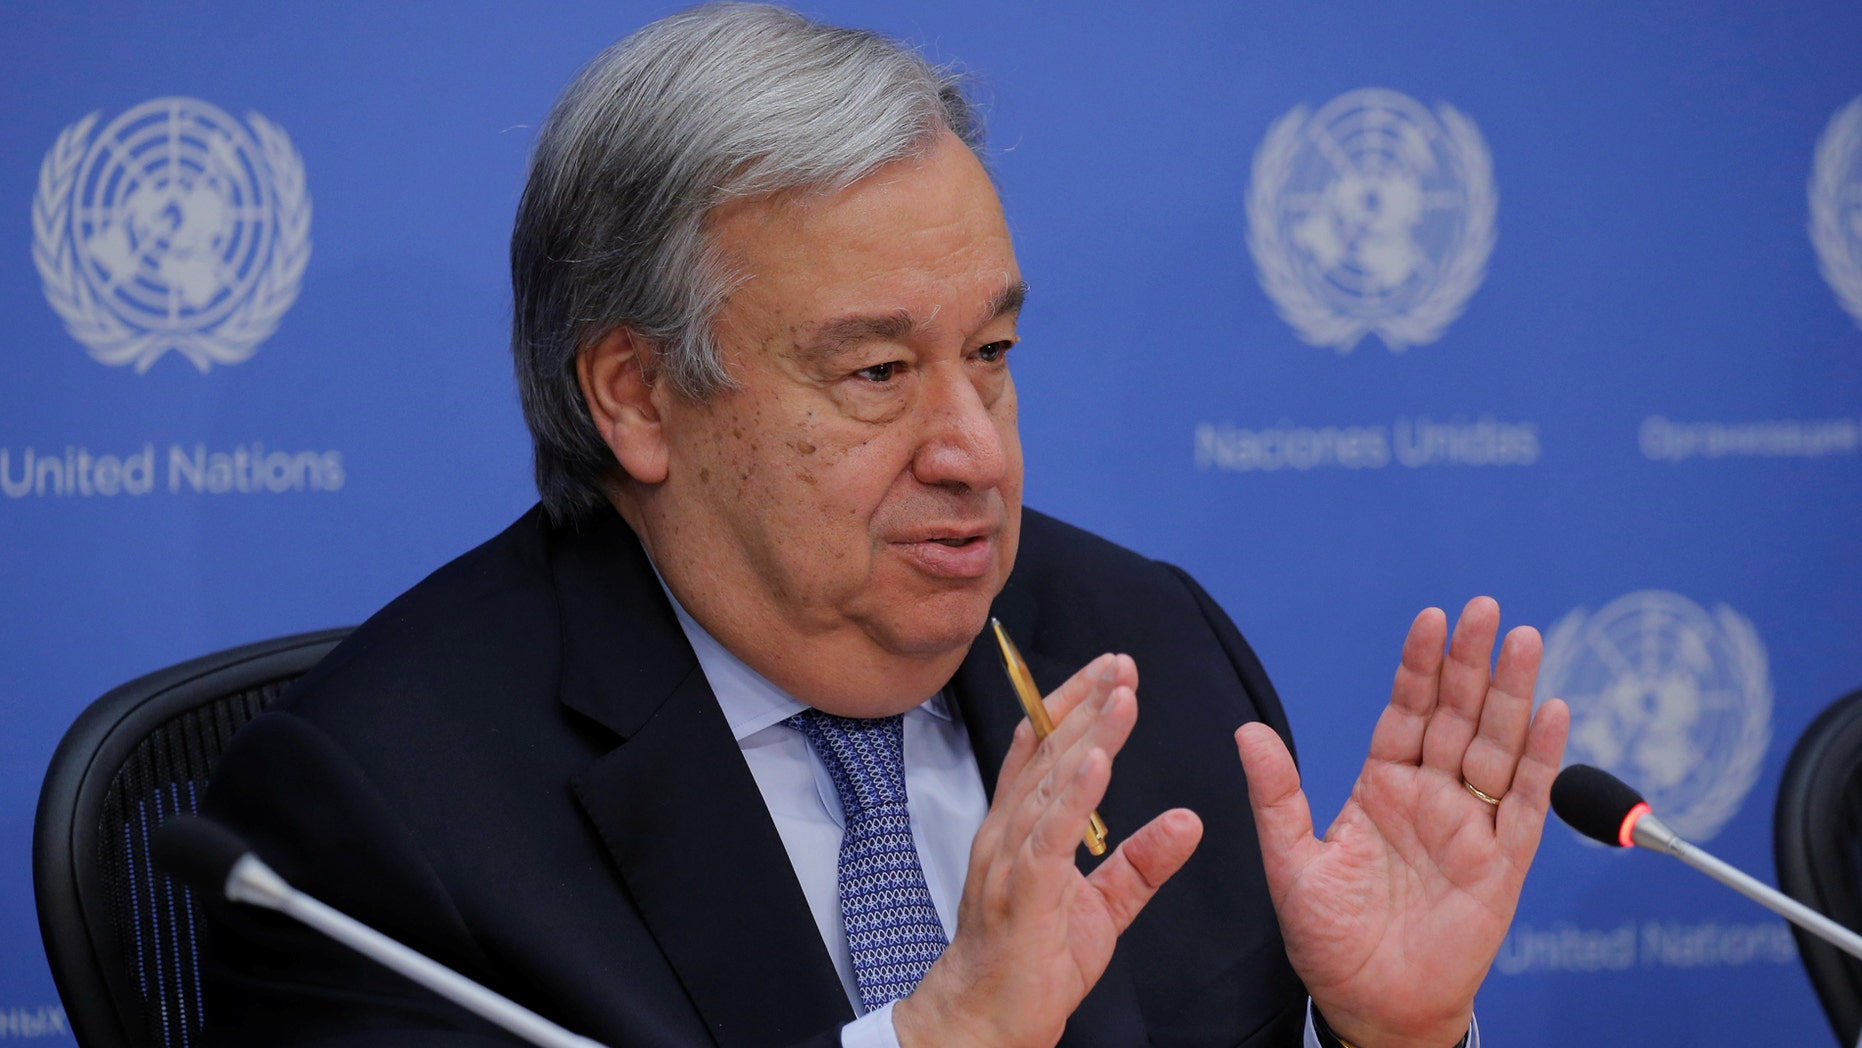 A spokesman for United Nations Secretary-General Antonio Guterres said the office has no authority over the UN forum.